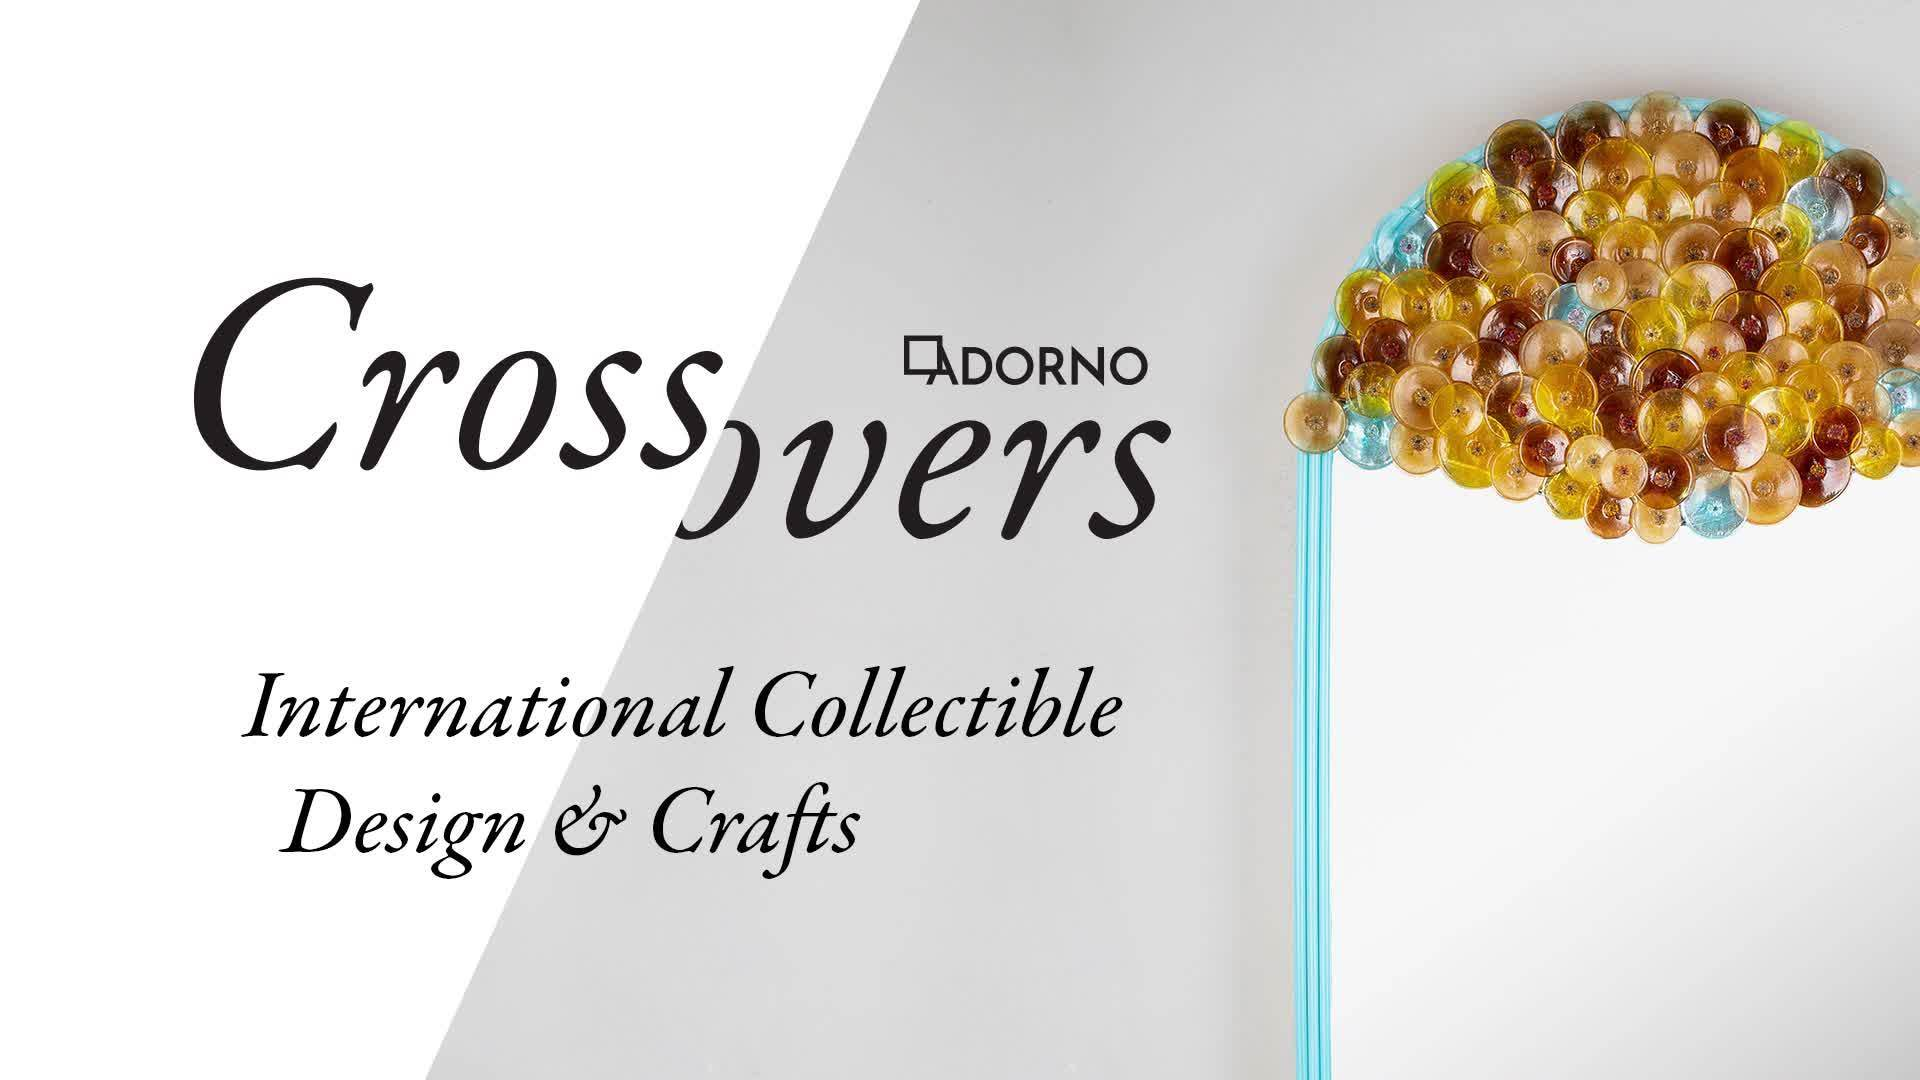 Crossovers at London Design Fair - mynd